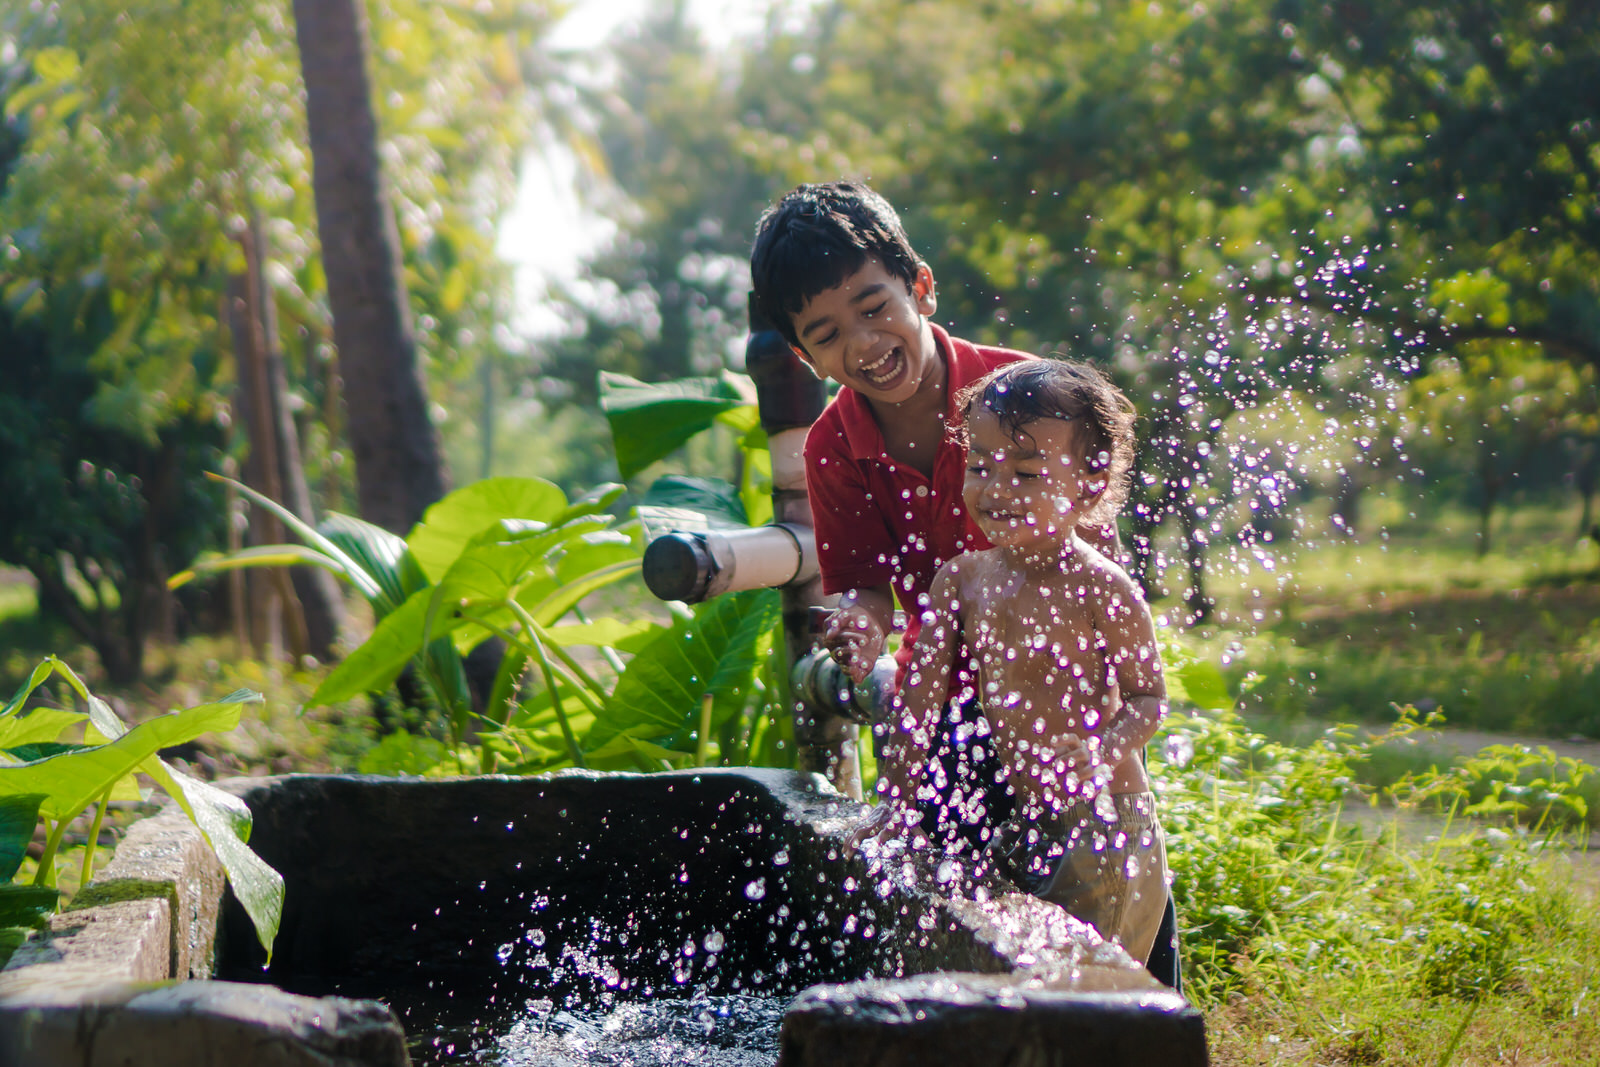 23122017-Boys-Playing-Water-Tank-341.jpg